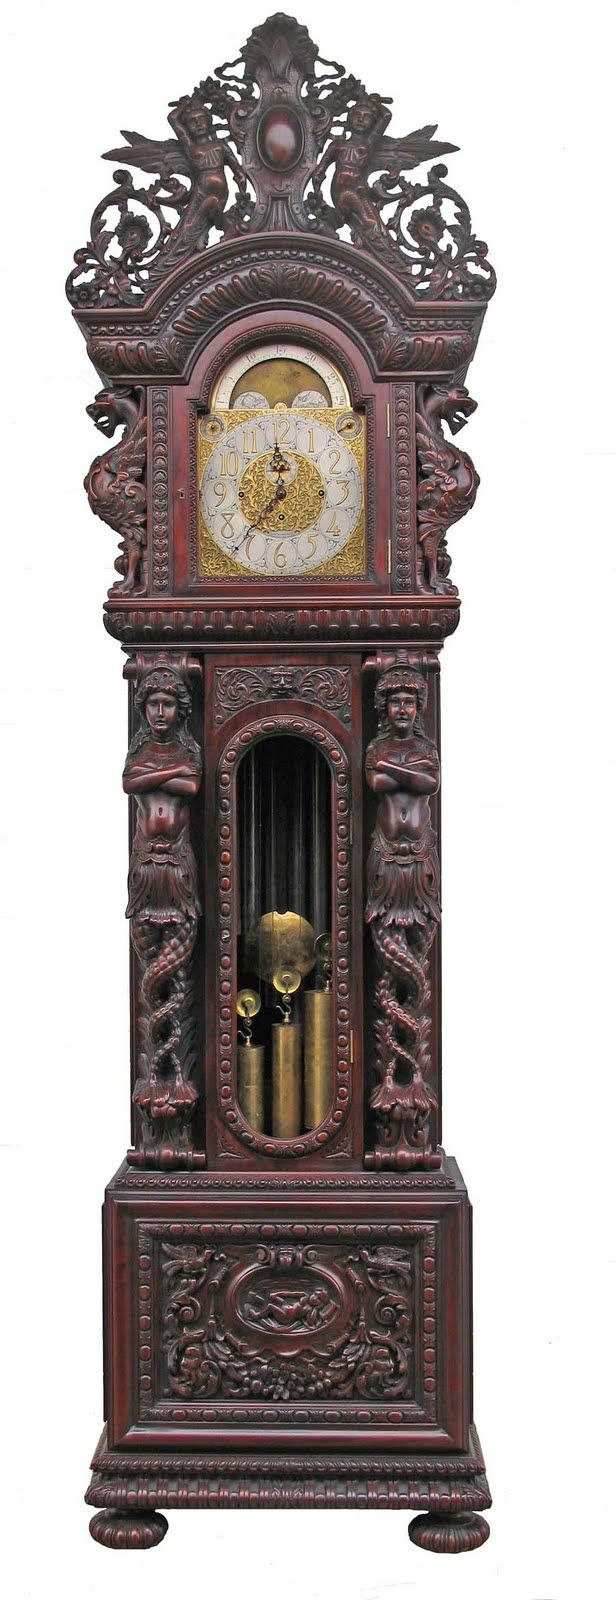 GRANDfather clock: Antiques Furniture Victorian, About Time, Victorian Grandfather, Grandfather Mantelclock, Alarm Clock, Vintage Grandfather Clocks, Old Clocks, Antiques Clocks, Antiques Grandfather